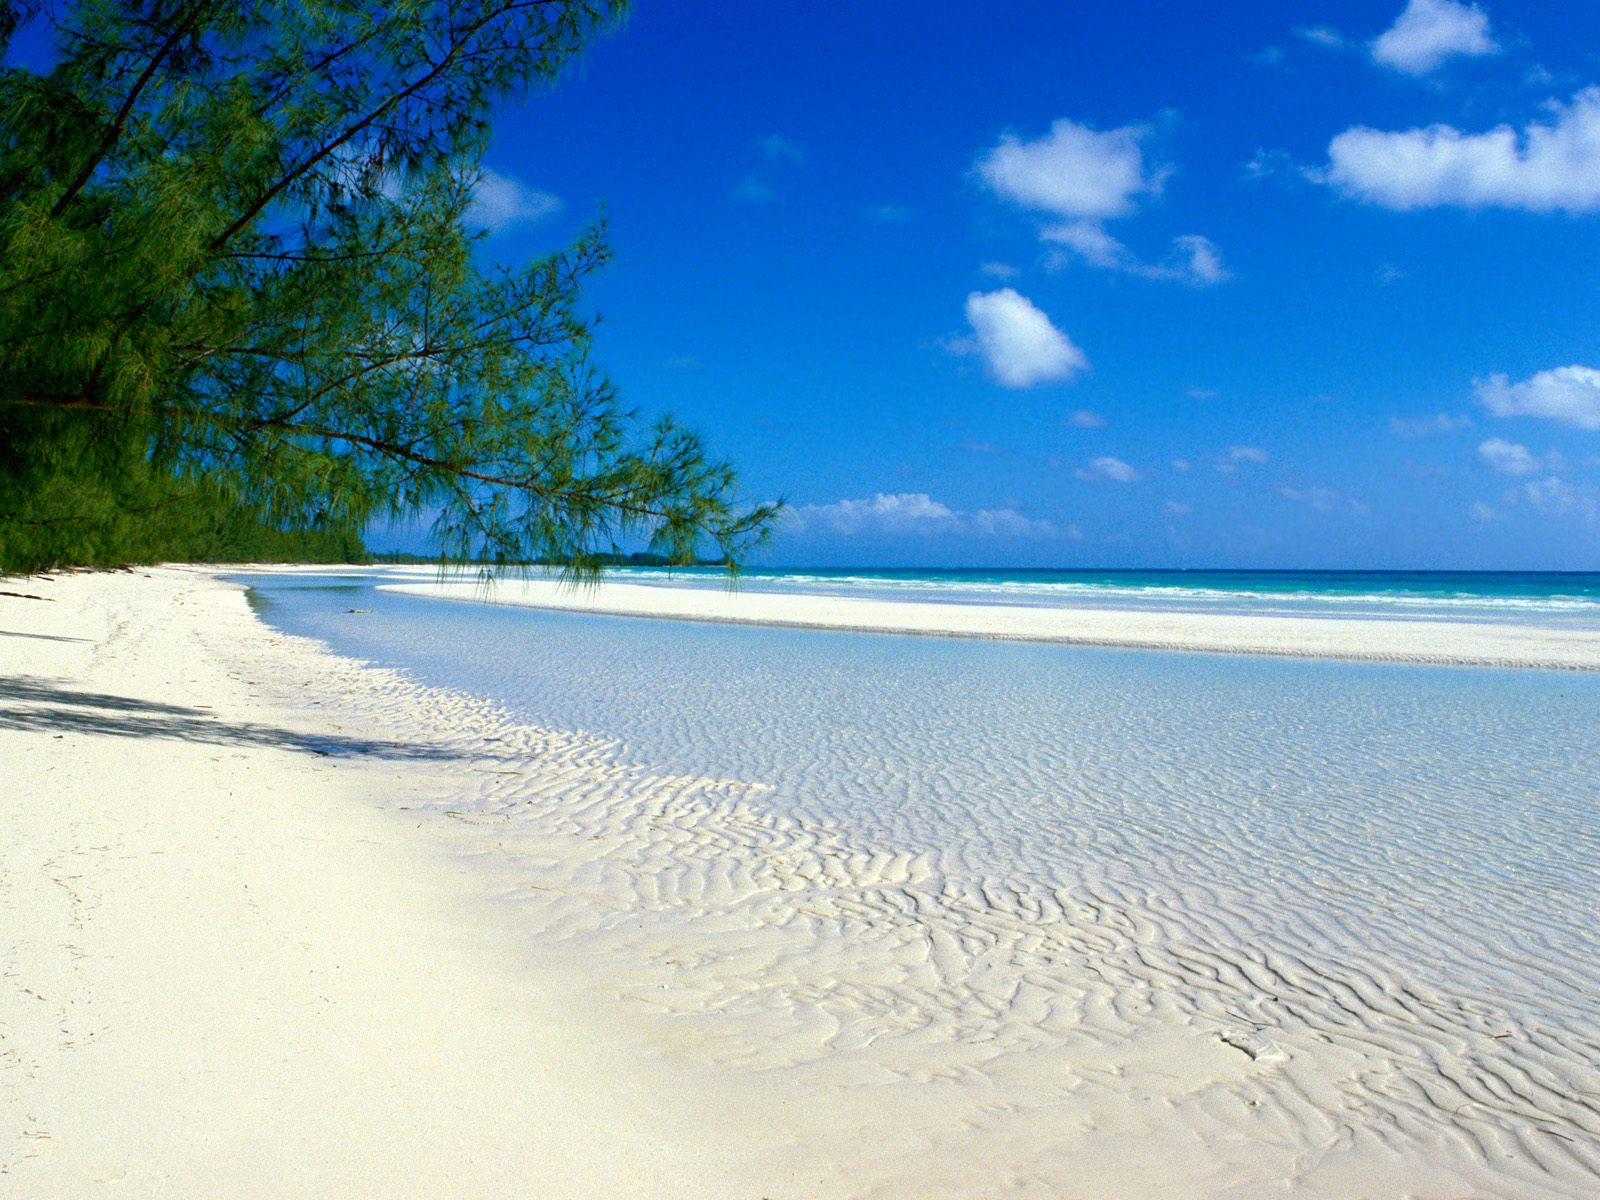 Bahamas Beaches Hd Wallpaper Background Images: Wallpaper Bluos: Beach Wallpaper